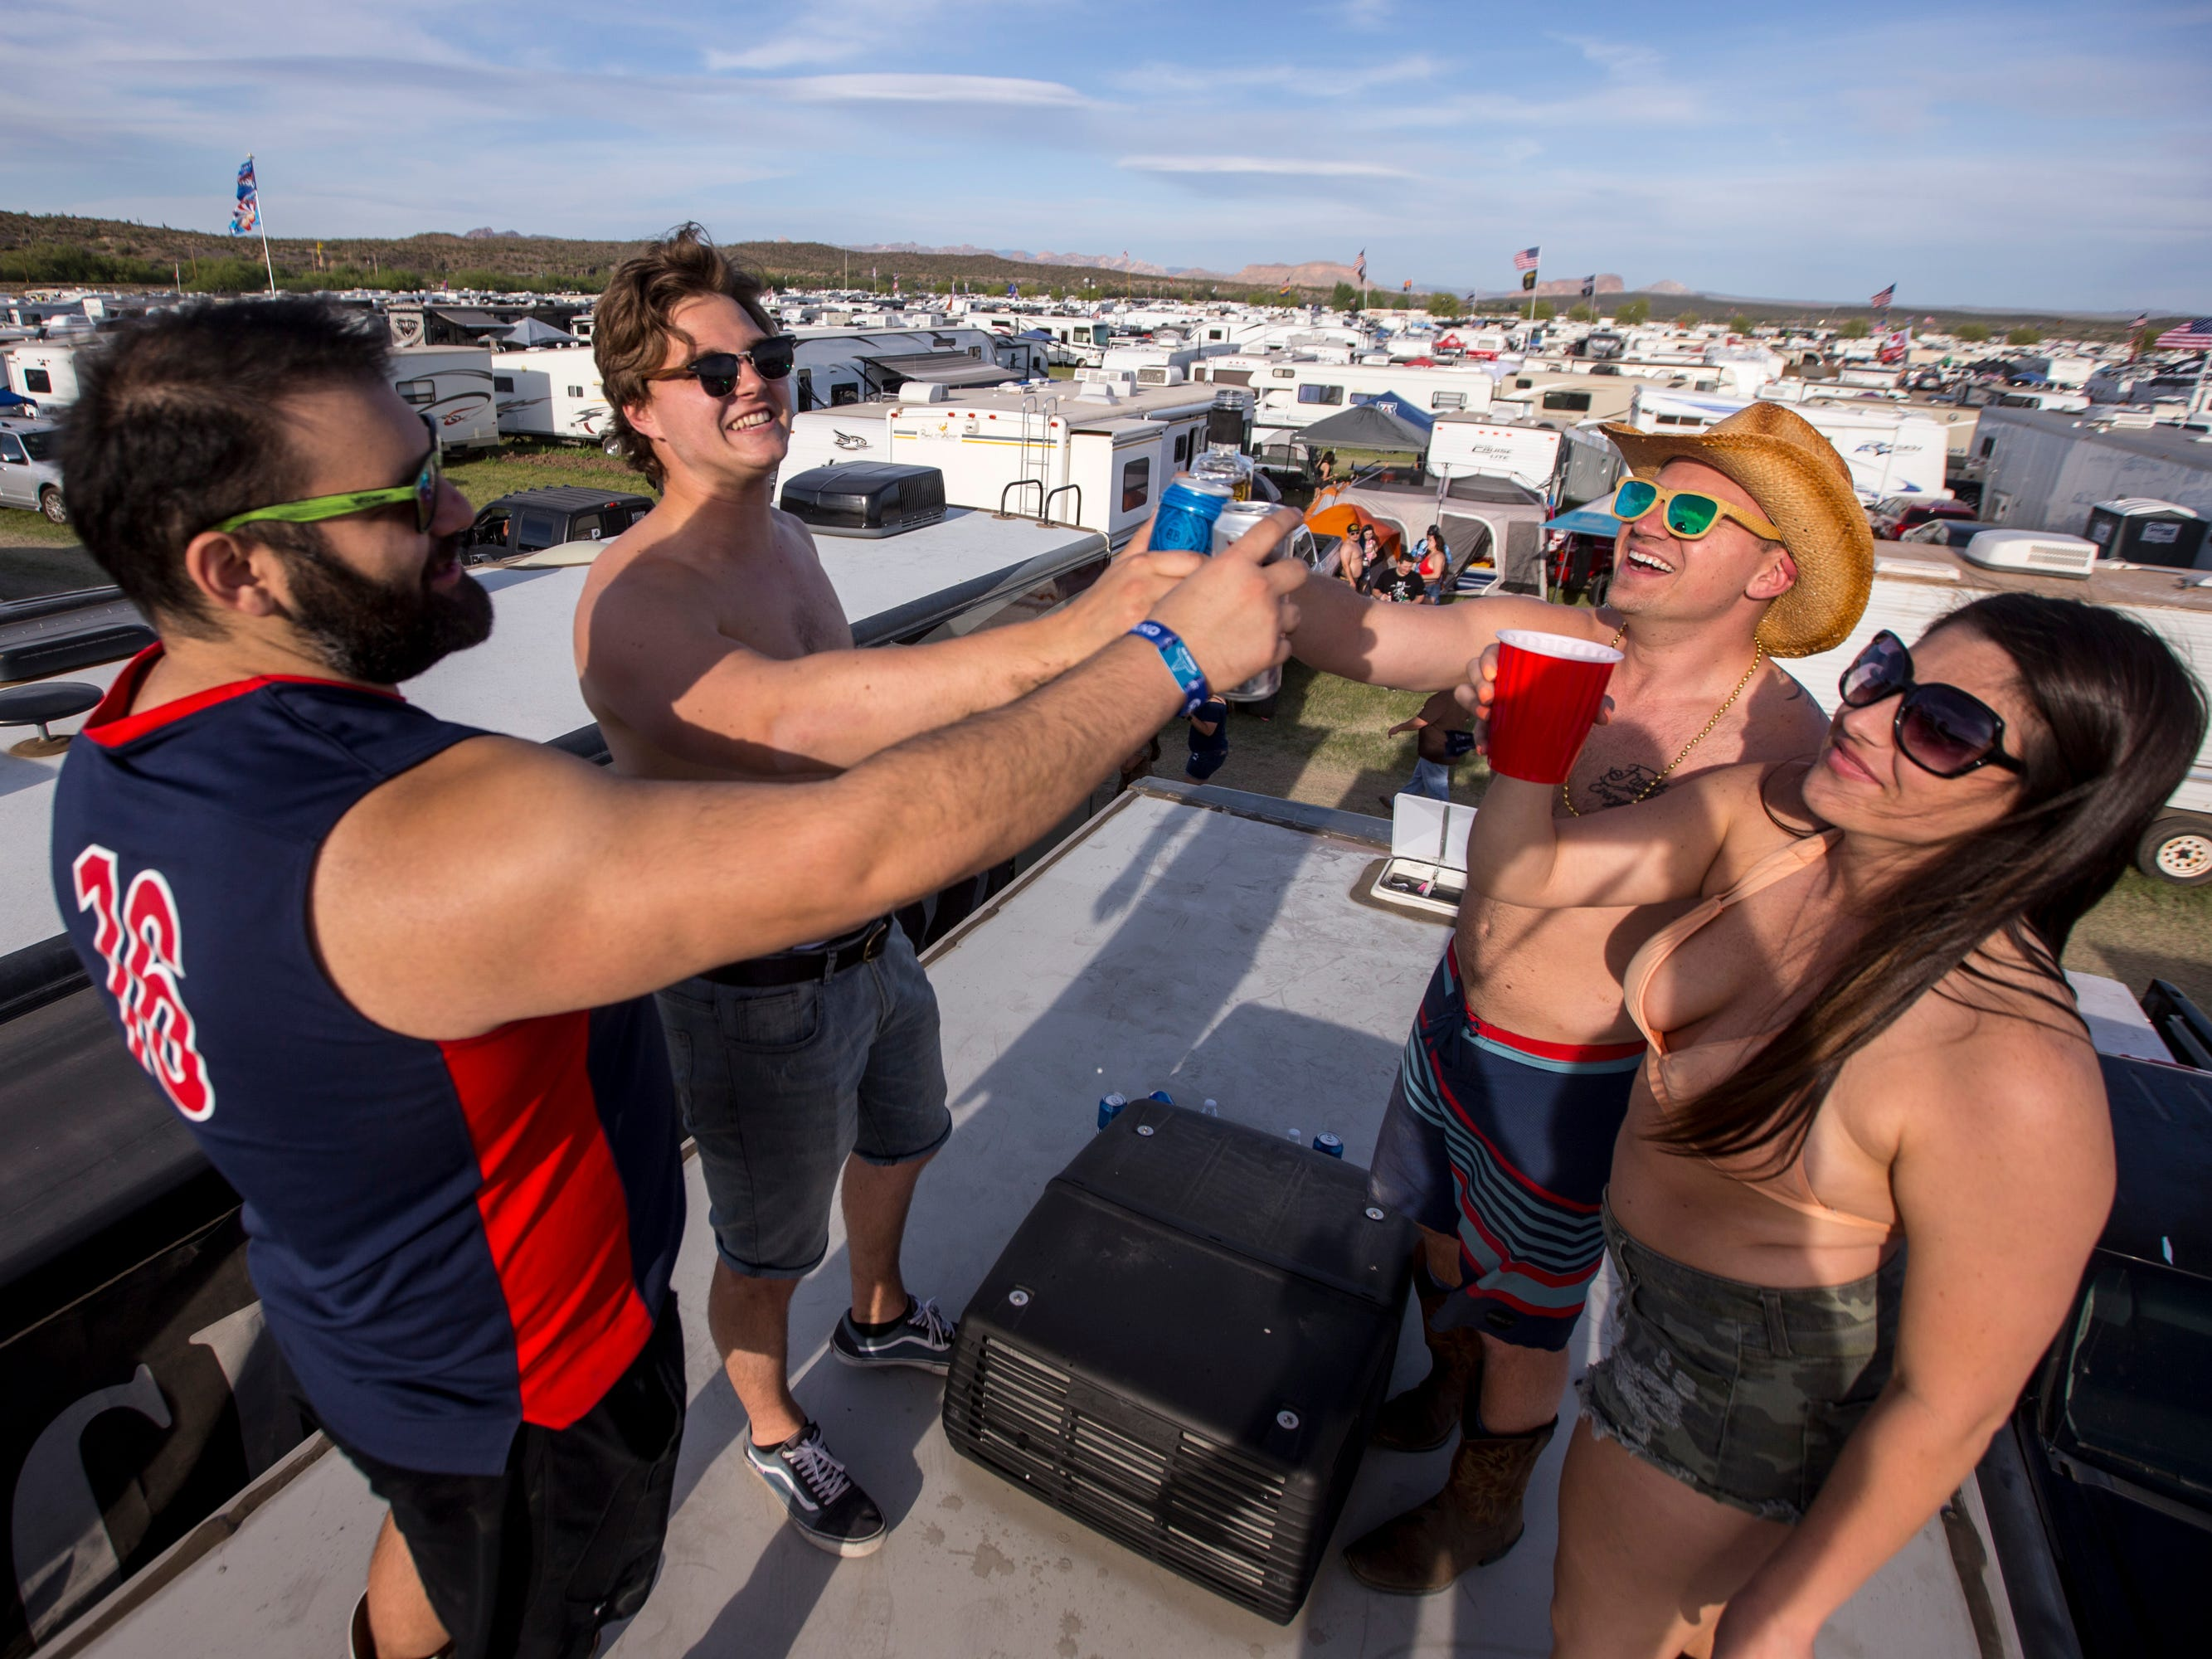 (from left to right) Miguel Perez, Anthony Johns, Max Zemezonak, and Jeanette Birk drink on top of their RV at the Crazy Coyote campsite  during Day 1 of Country Thunder Arizona on Apr. 11, 2019, in Florence, Ariz.